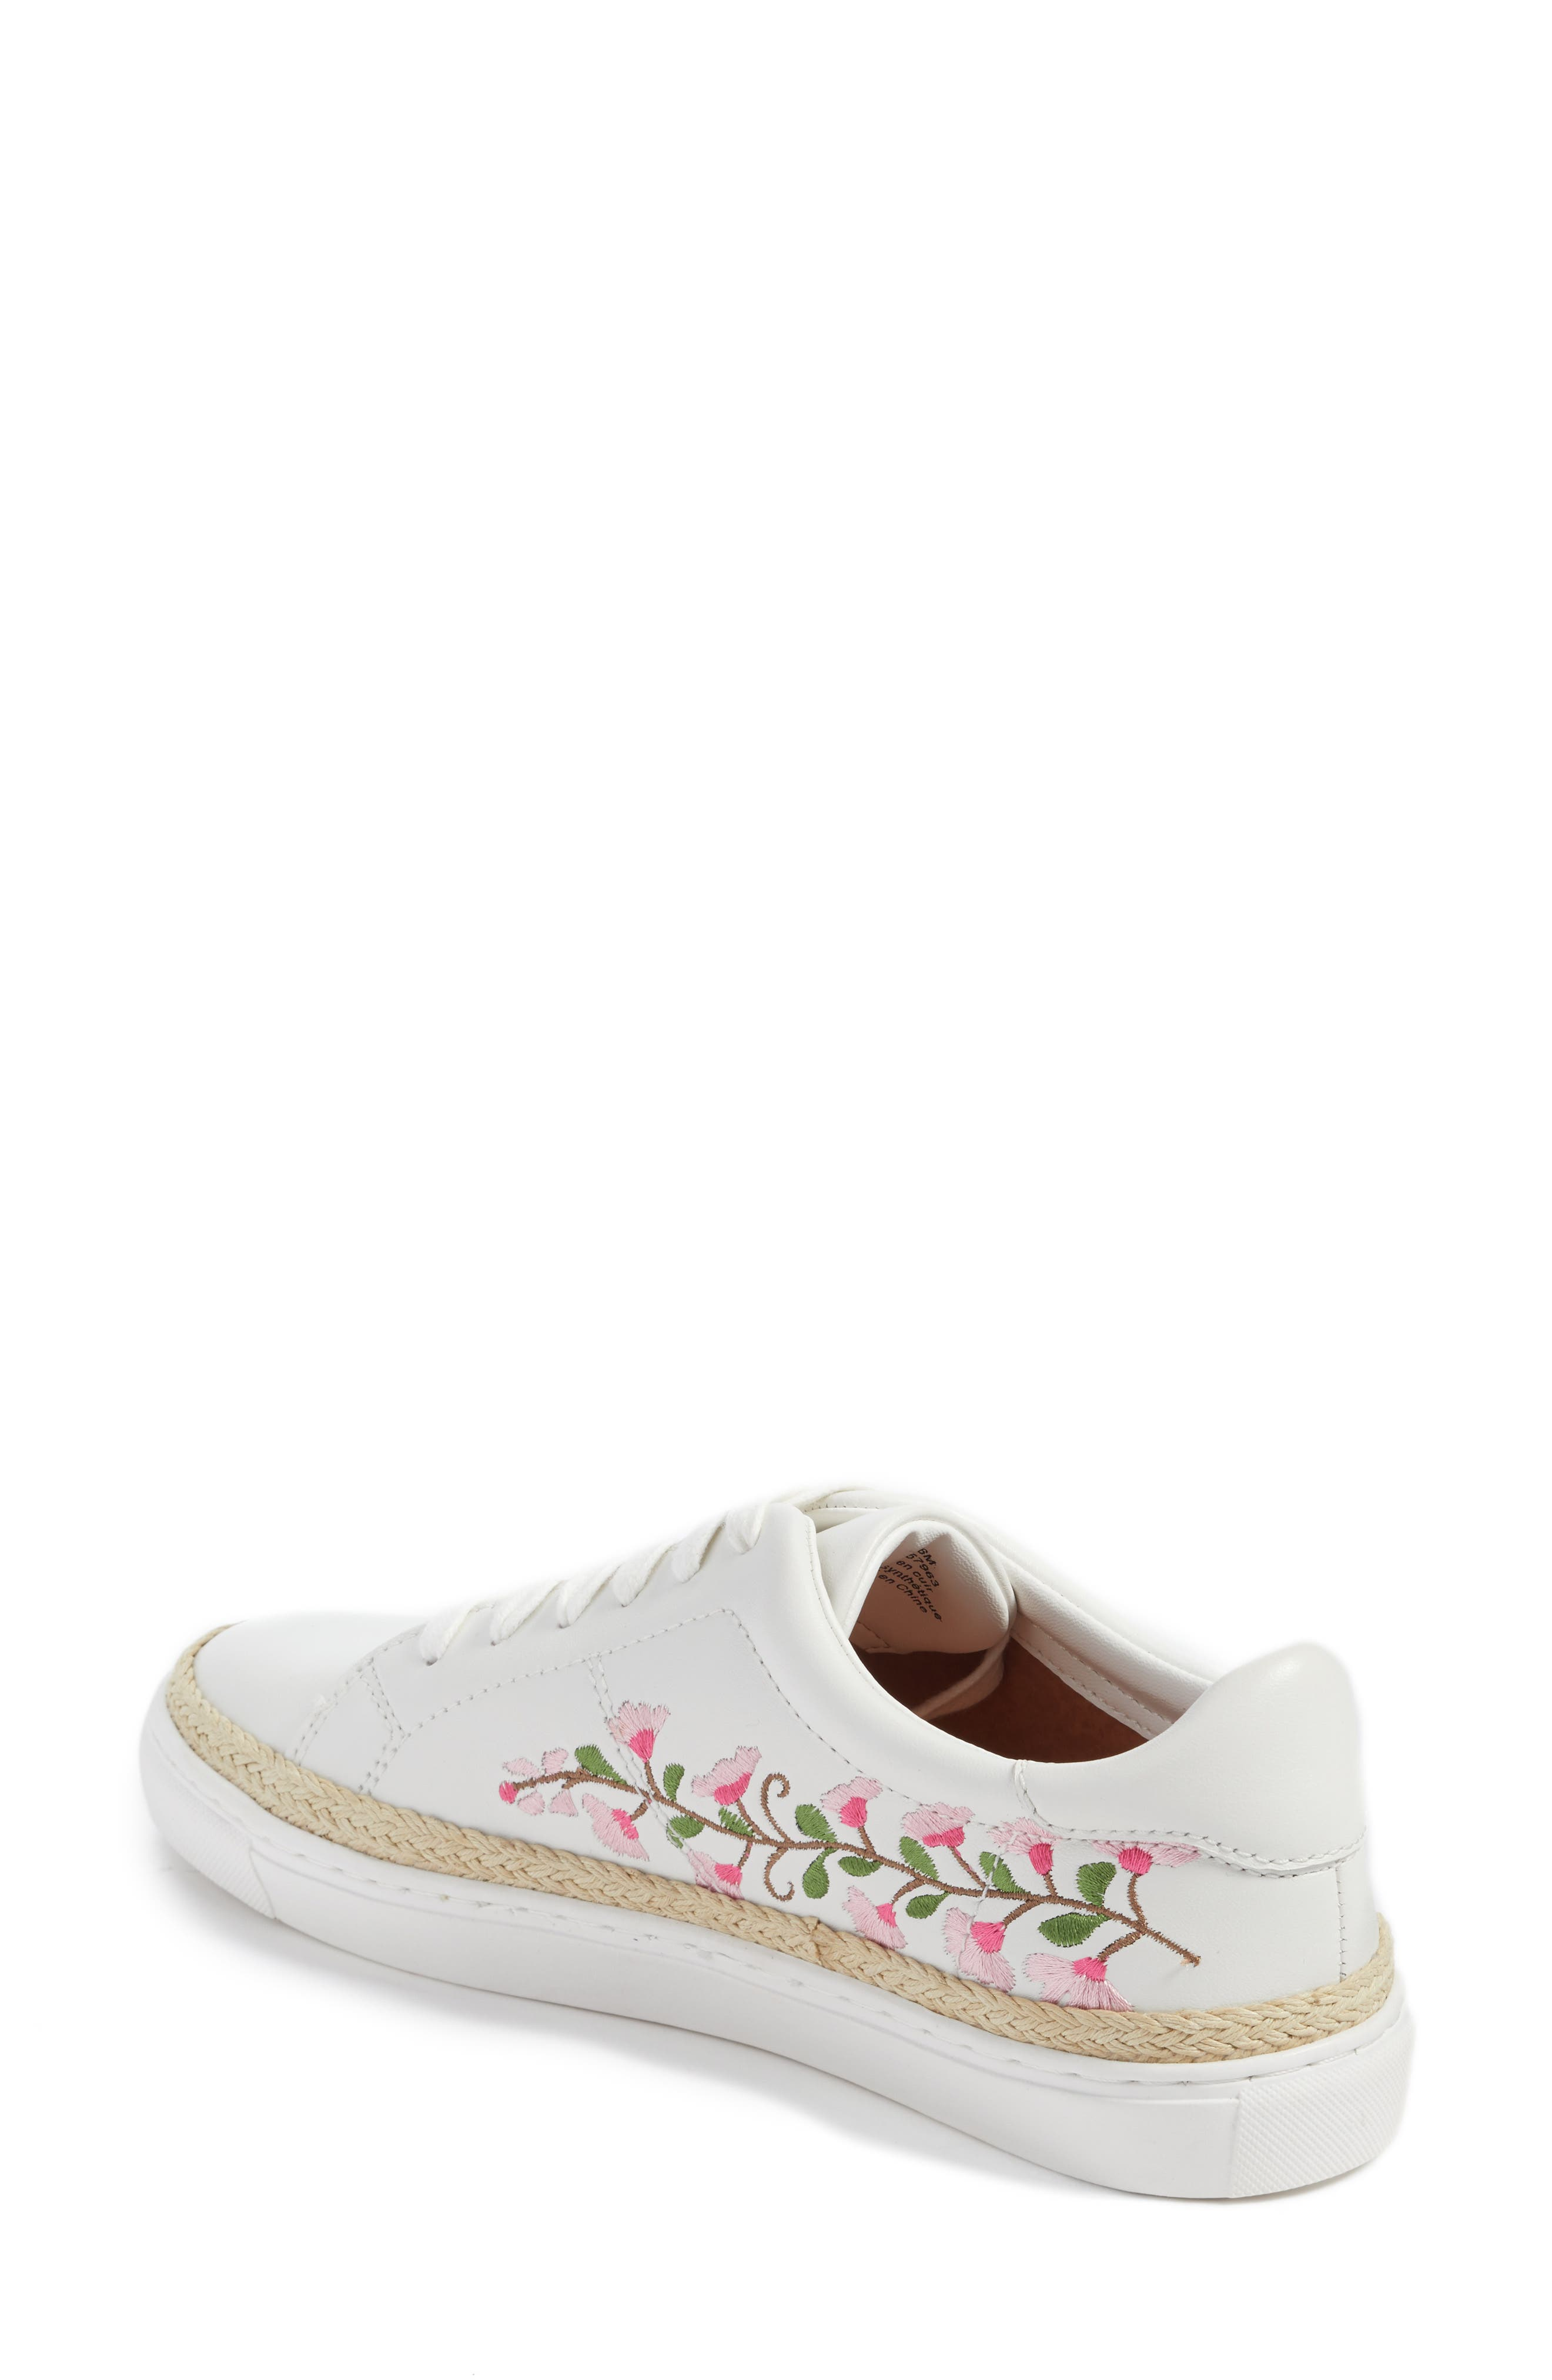 Perry Lea Embroidered Sneaker,                             Alternate thumbnail 2, color,                             100